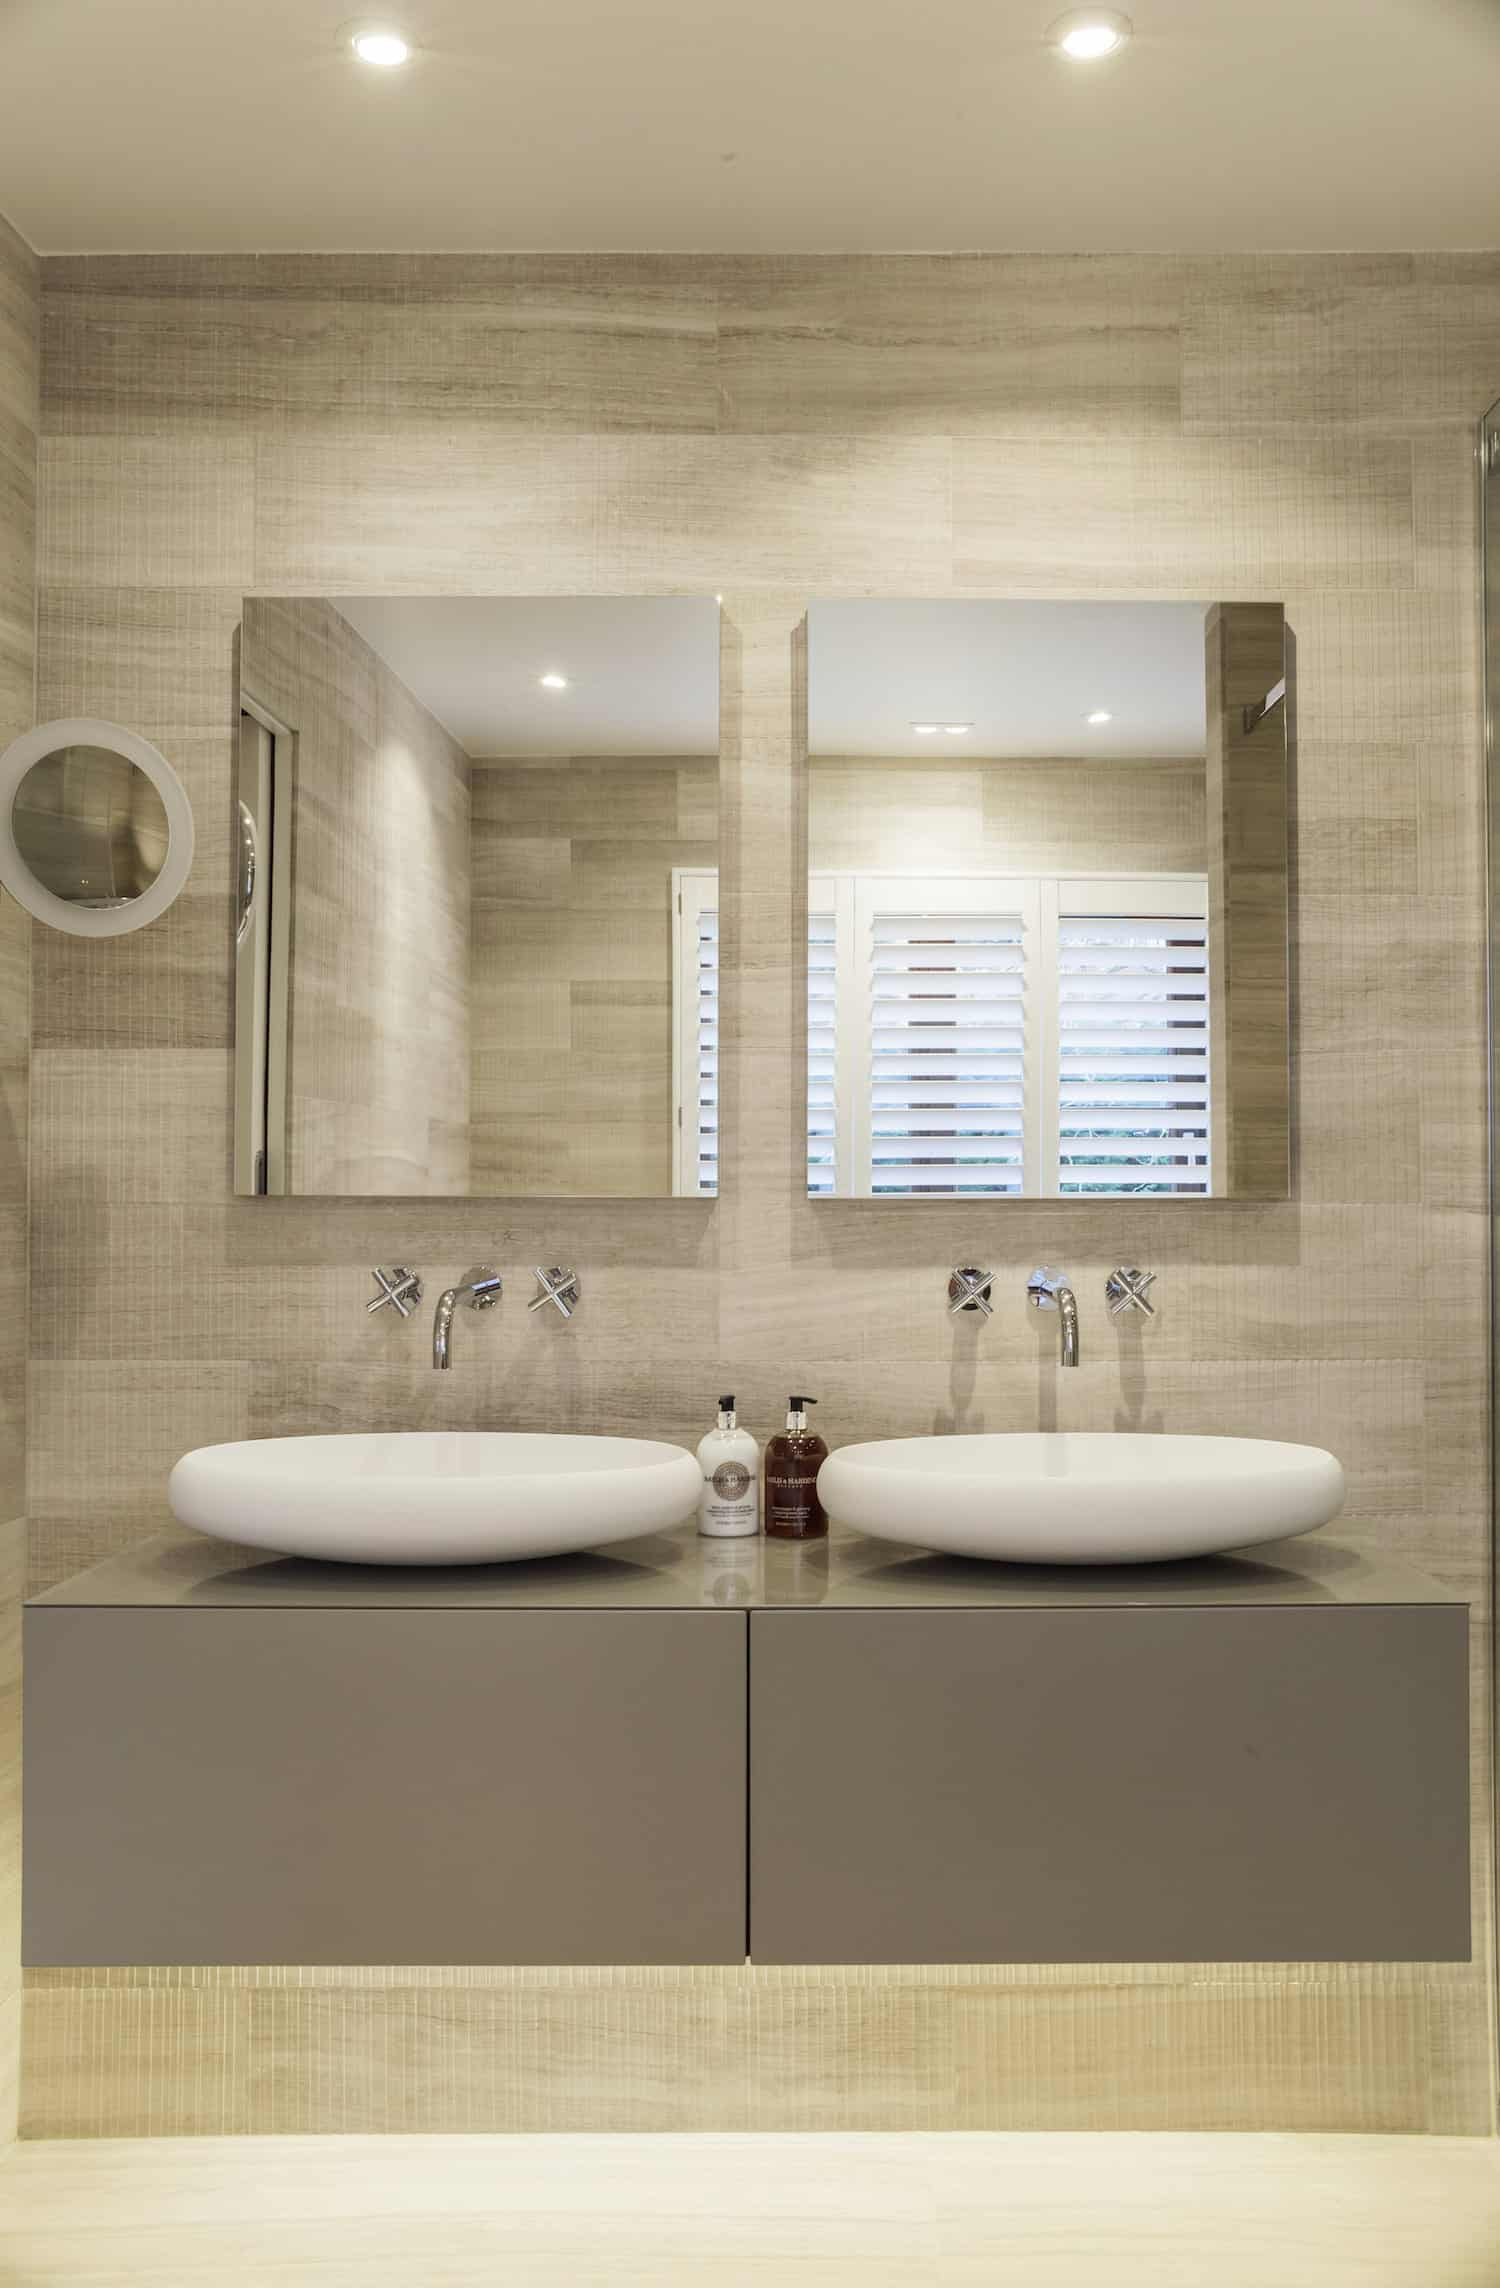 Here's a view of the two white vessel basin sinks with side-by-side mirrors. The basins sit on a modern style floating vanity with lighting underneath.